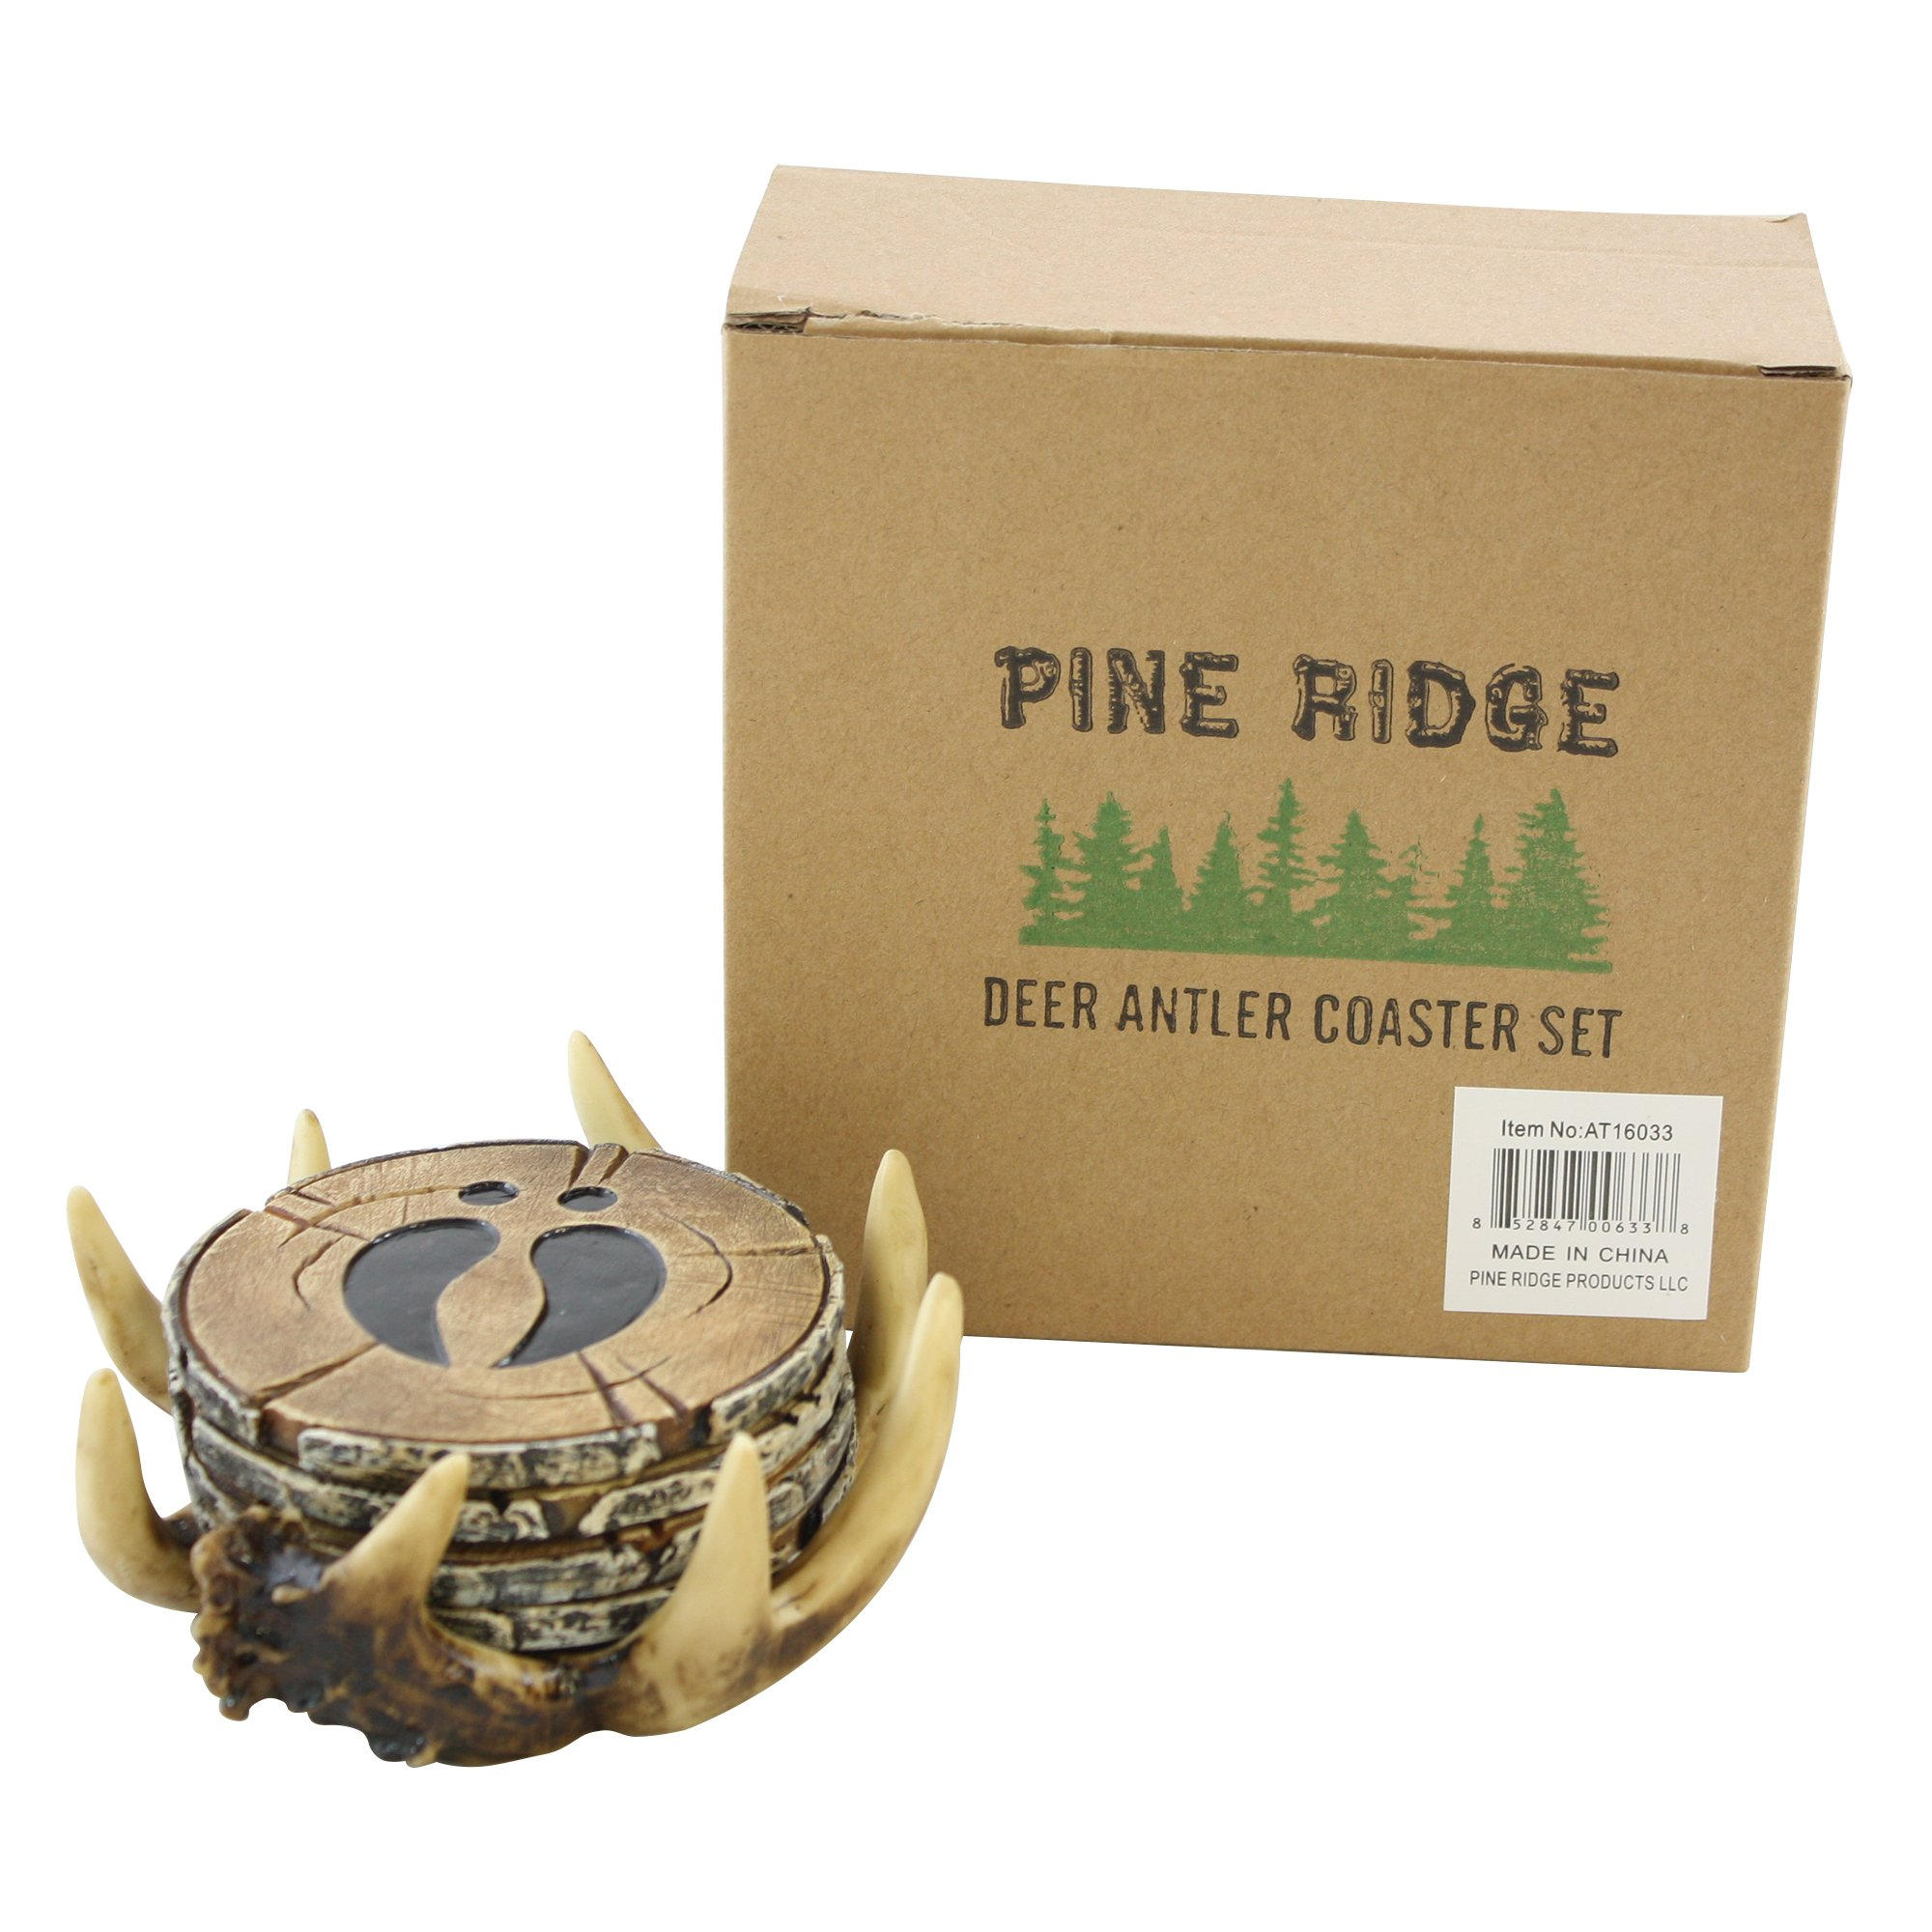 Pine Ridge Old West Deer Antler Drink Coasters Set Of 4 - Home Table Beverage Coaster With Holder - Drink Glass Holder With Outdoors Rustic Cabin Theme Decor by Pine Ridge (Image #9)